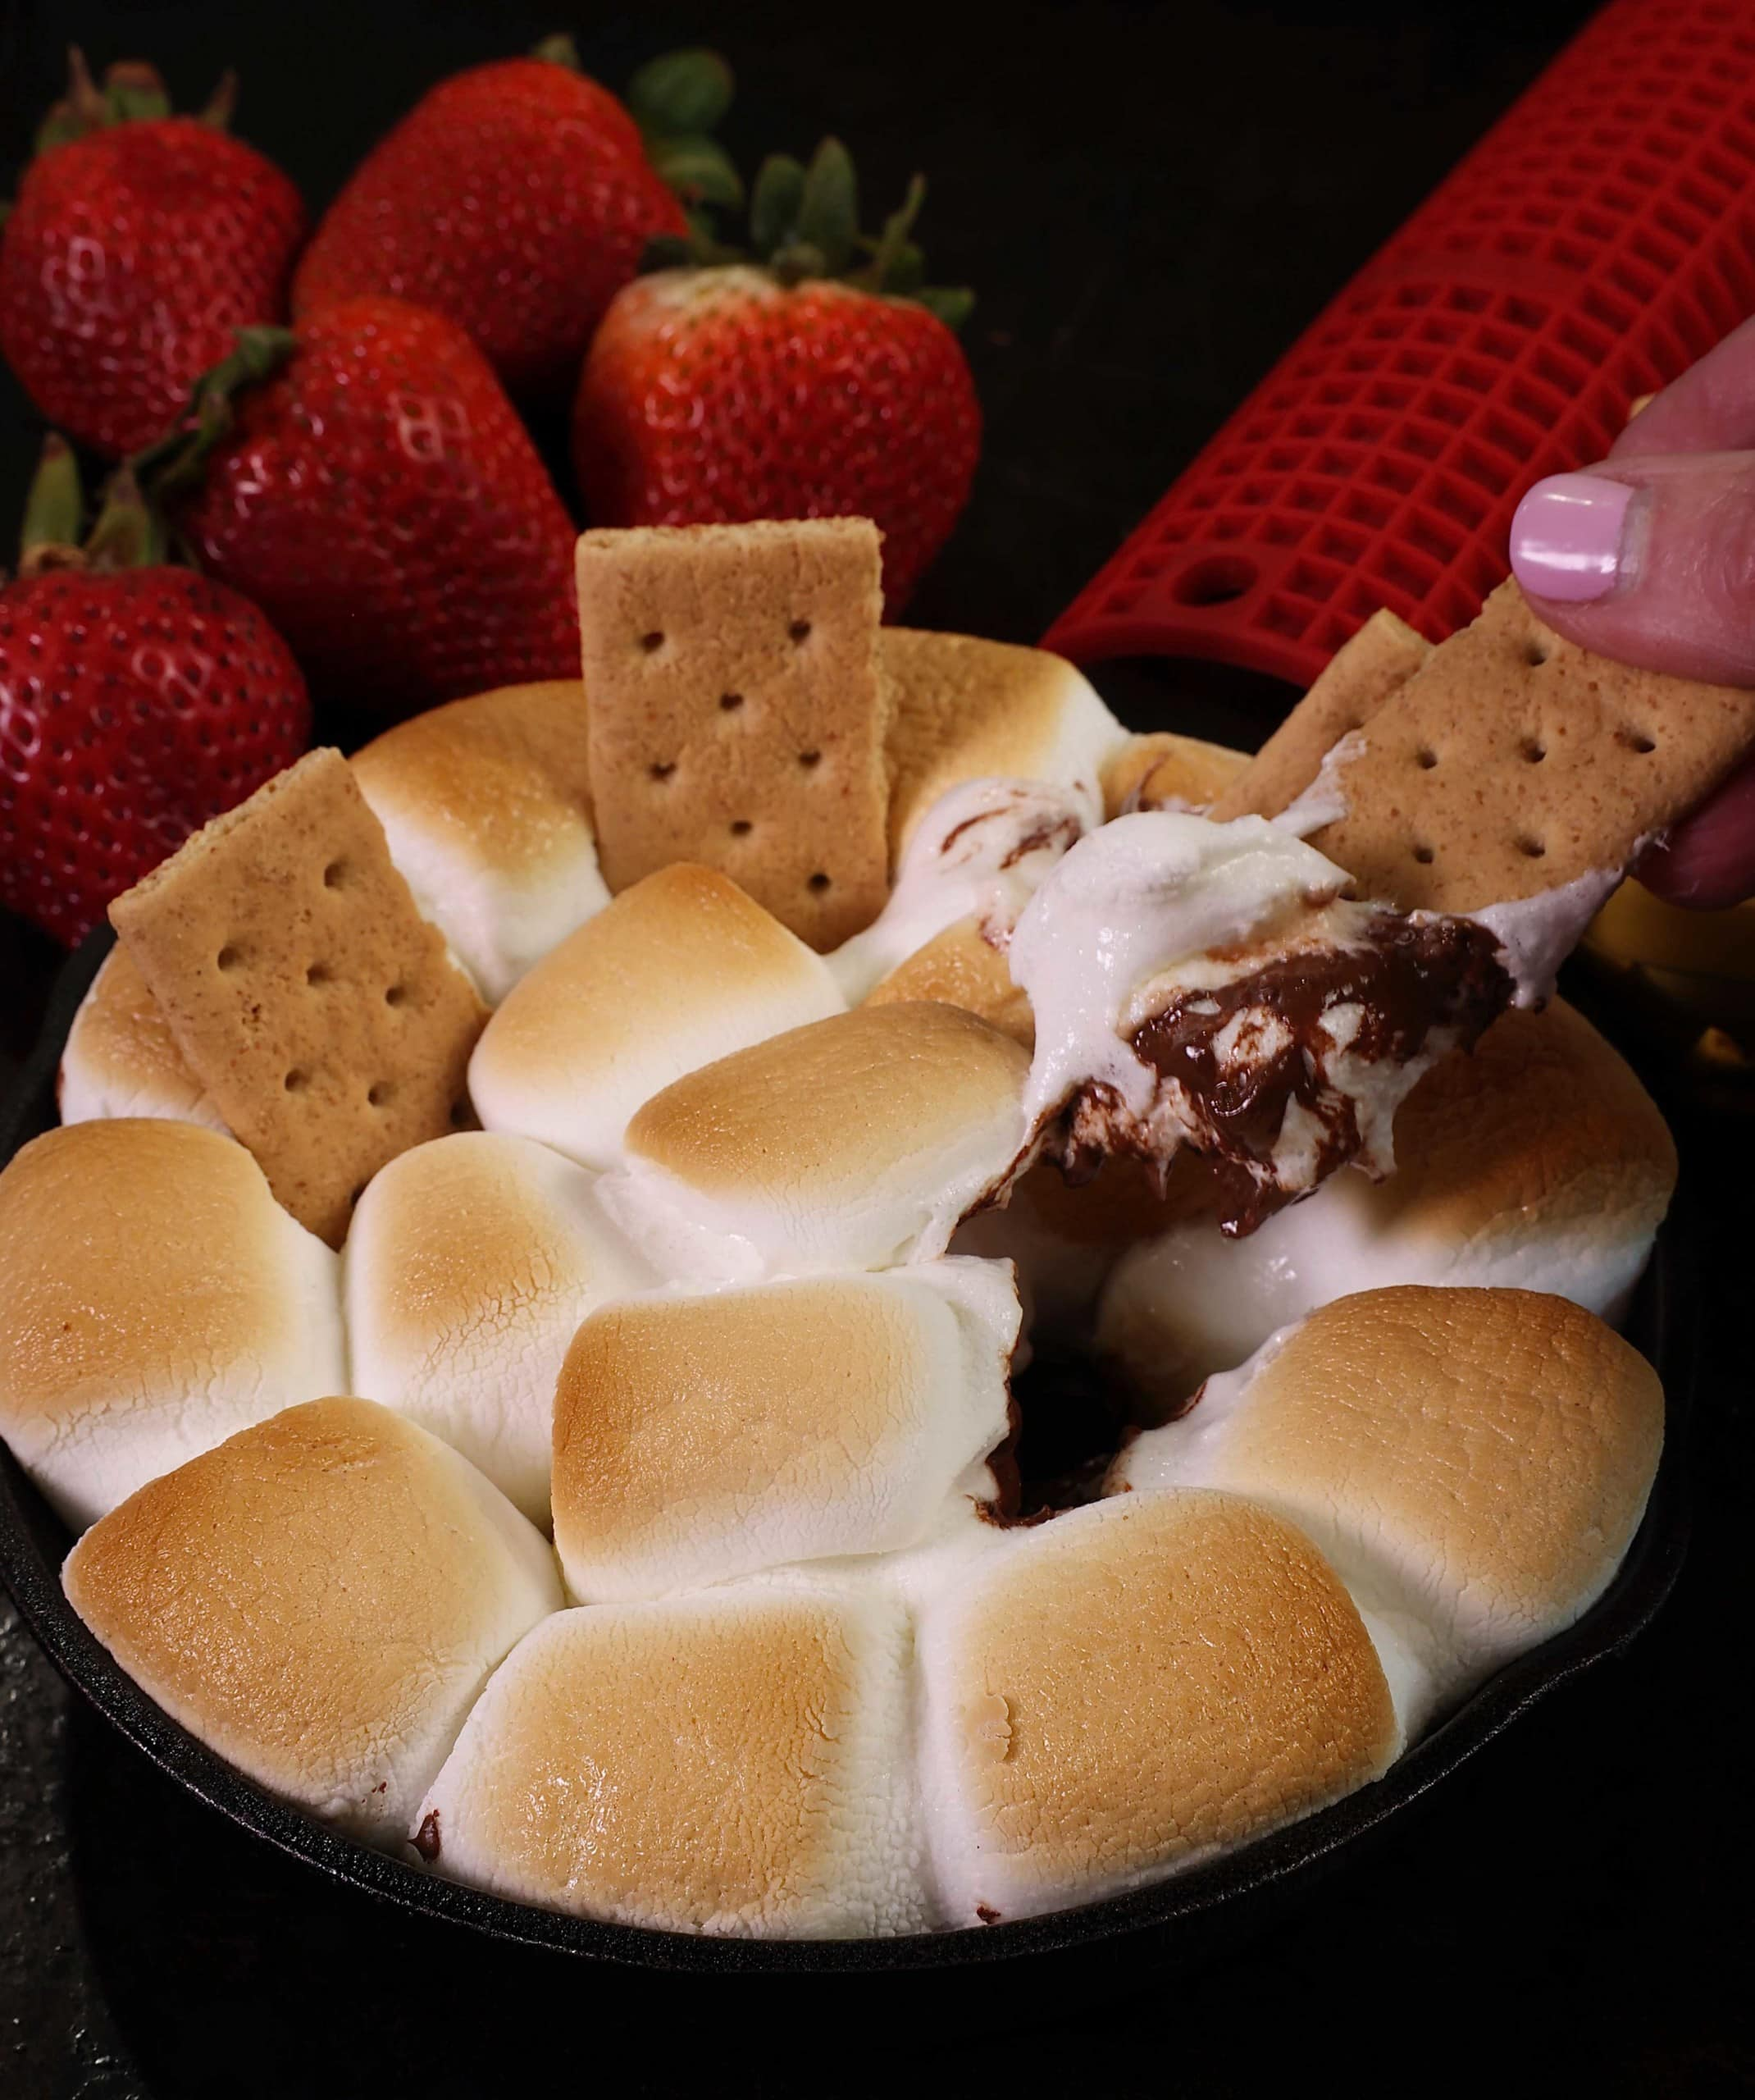 a graham cracker dipped into a skillet filled with melted chocolate and toasted marshmallows